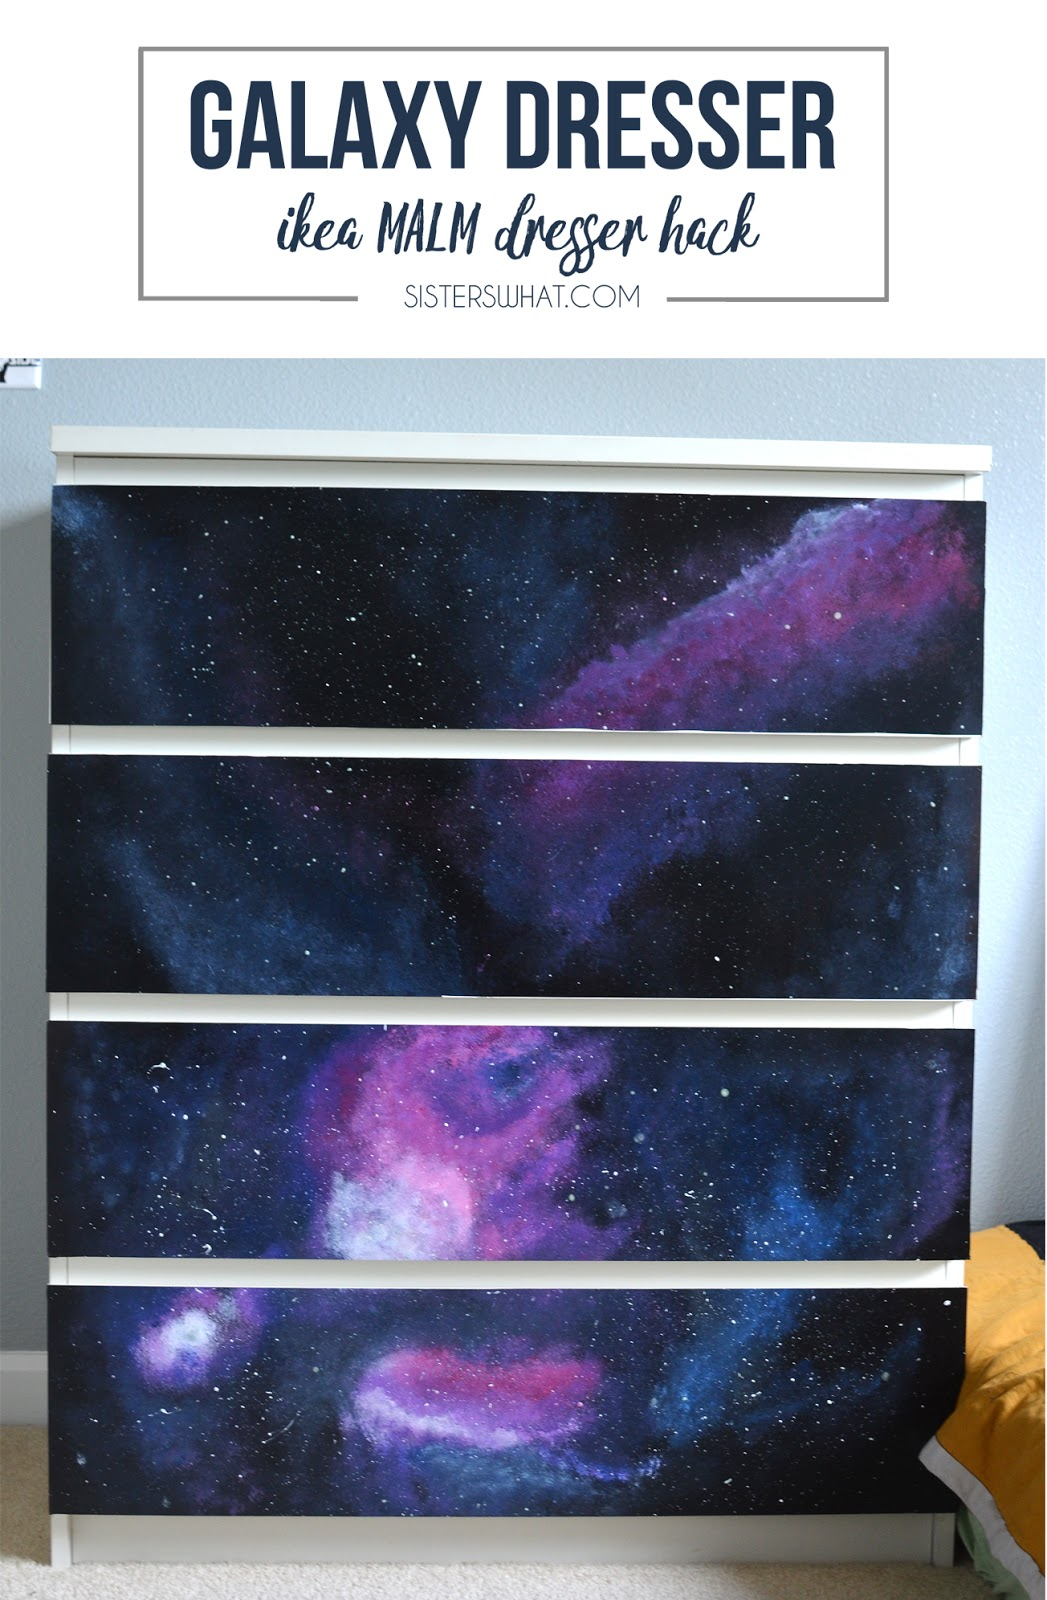 Galaxy dresser using an Ikea dresser - perfect for a space room